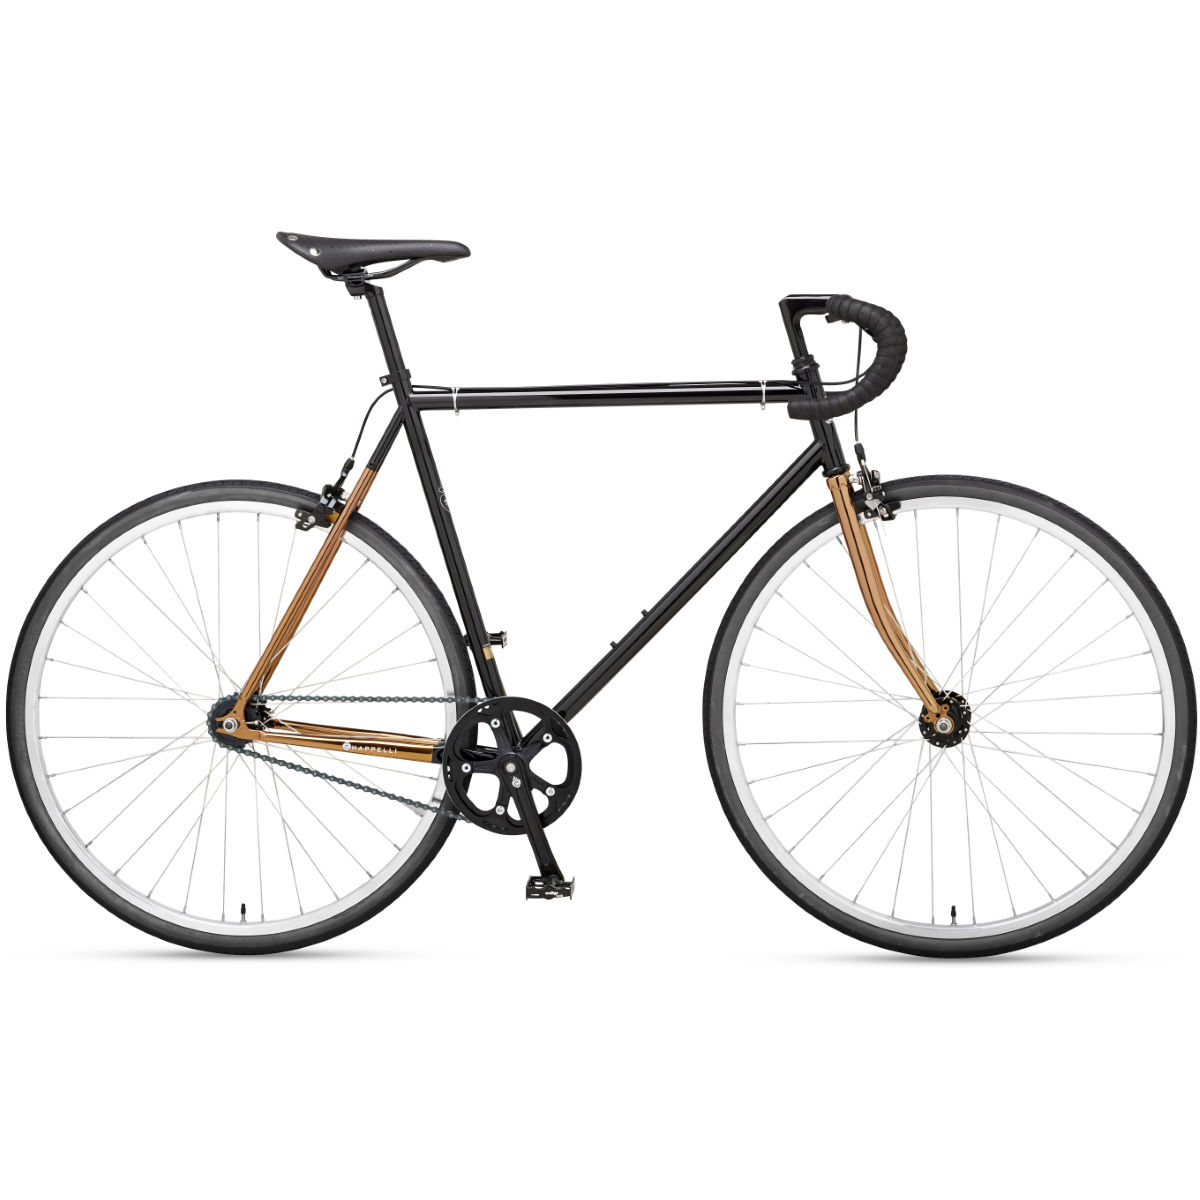 Image of Chappelli Vintage Single Speed Limited Edition Bike (2017) Single Speeds